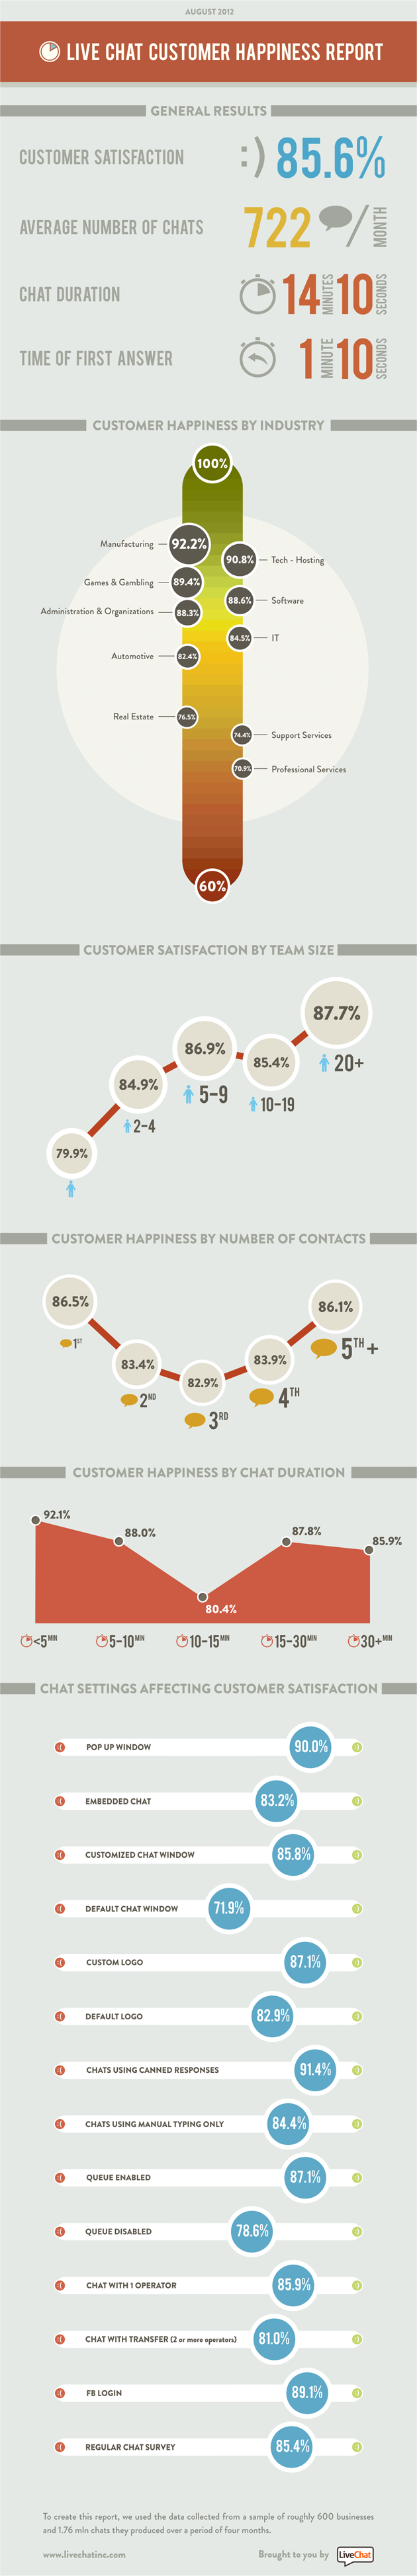 Live chat customer happiness report infographic pixels